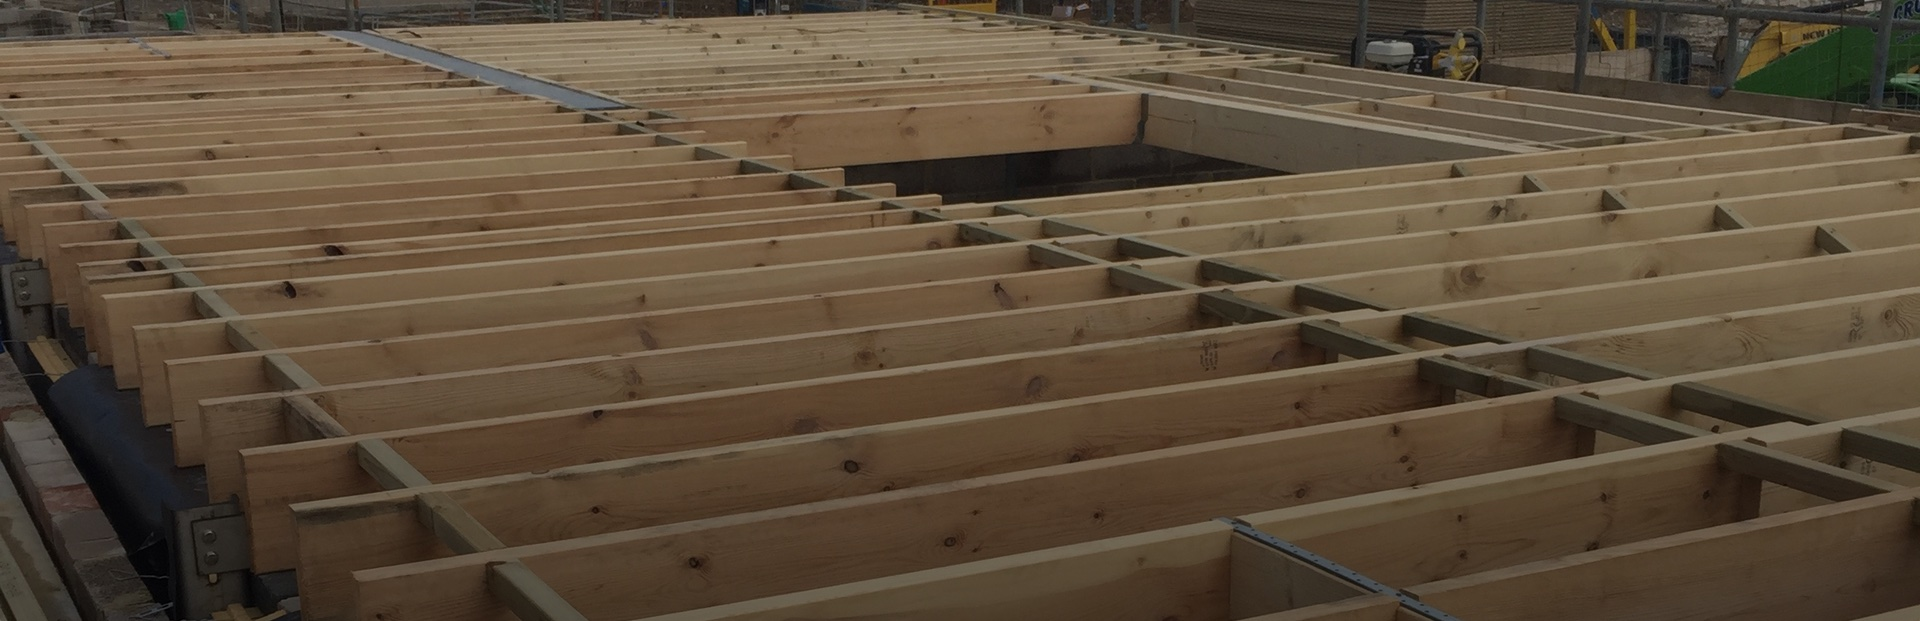 Joists Amp Roofing Ab Carpentry Dorset